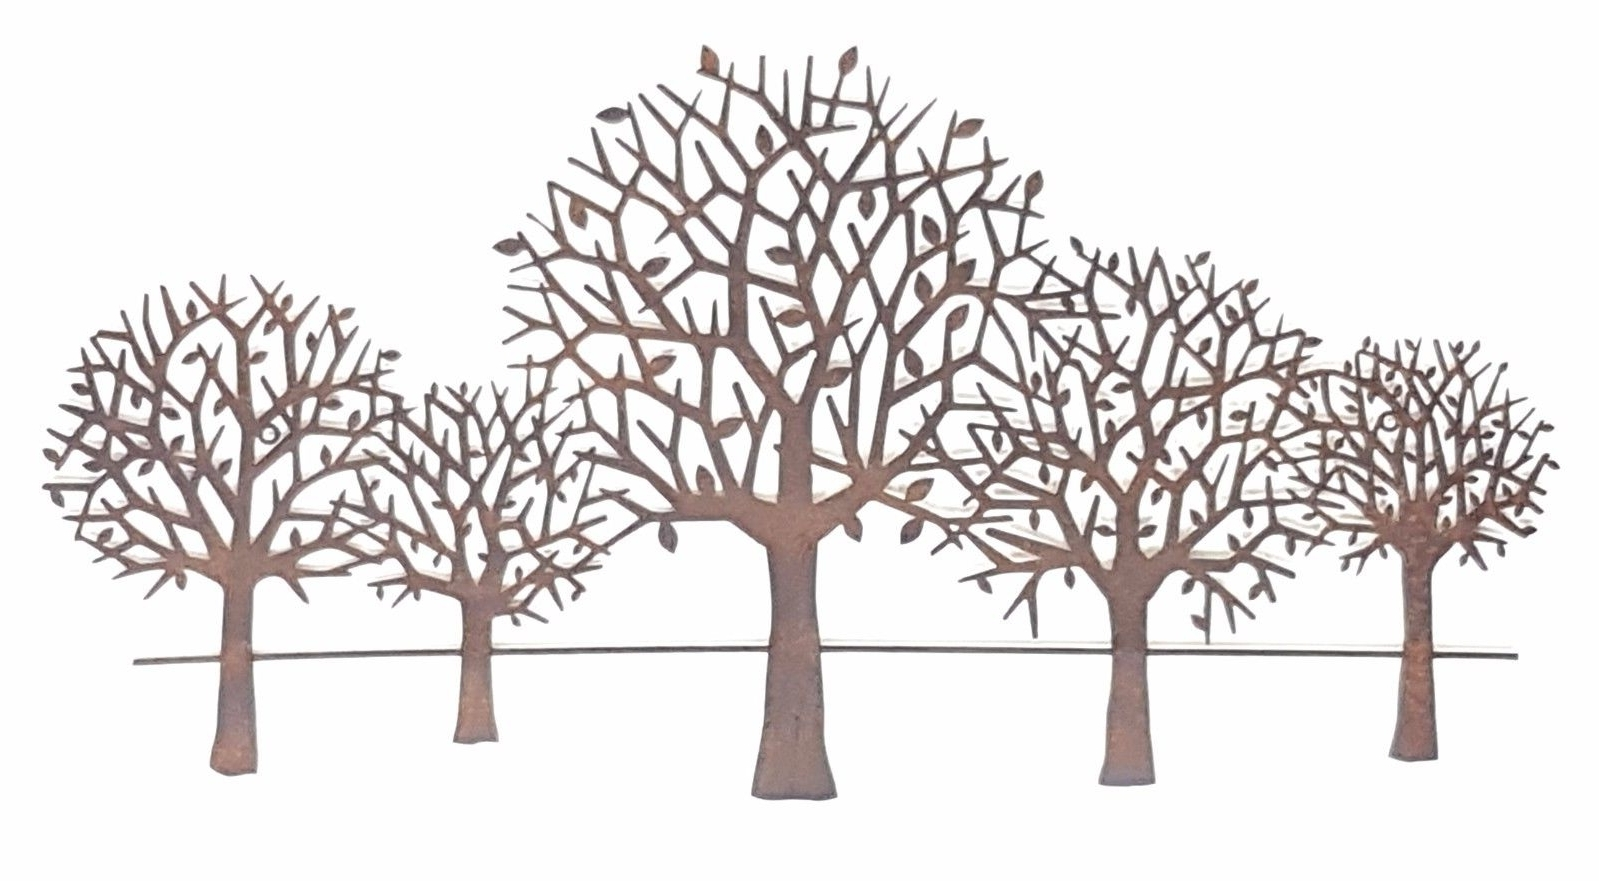 Most Up To Date Wall Art Designs: Metal Wall Art Trees Tree Scenery Metal Hanging With Regard To Tree Wall Art Sculpture (View 7 of 15)